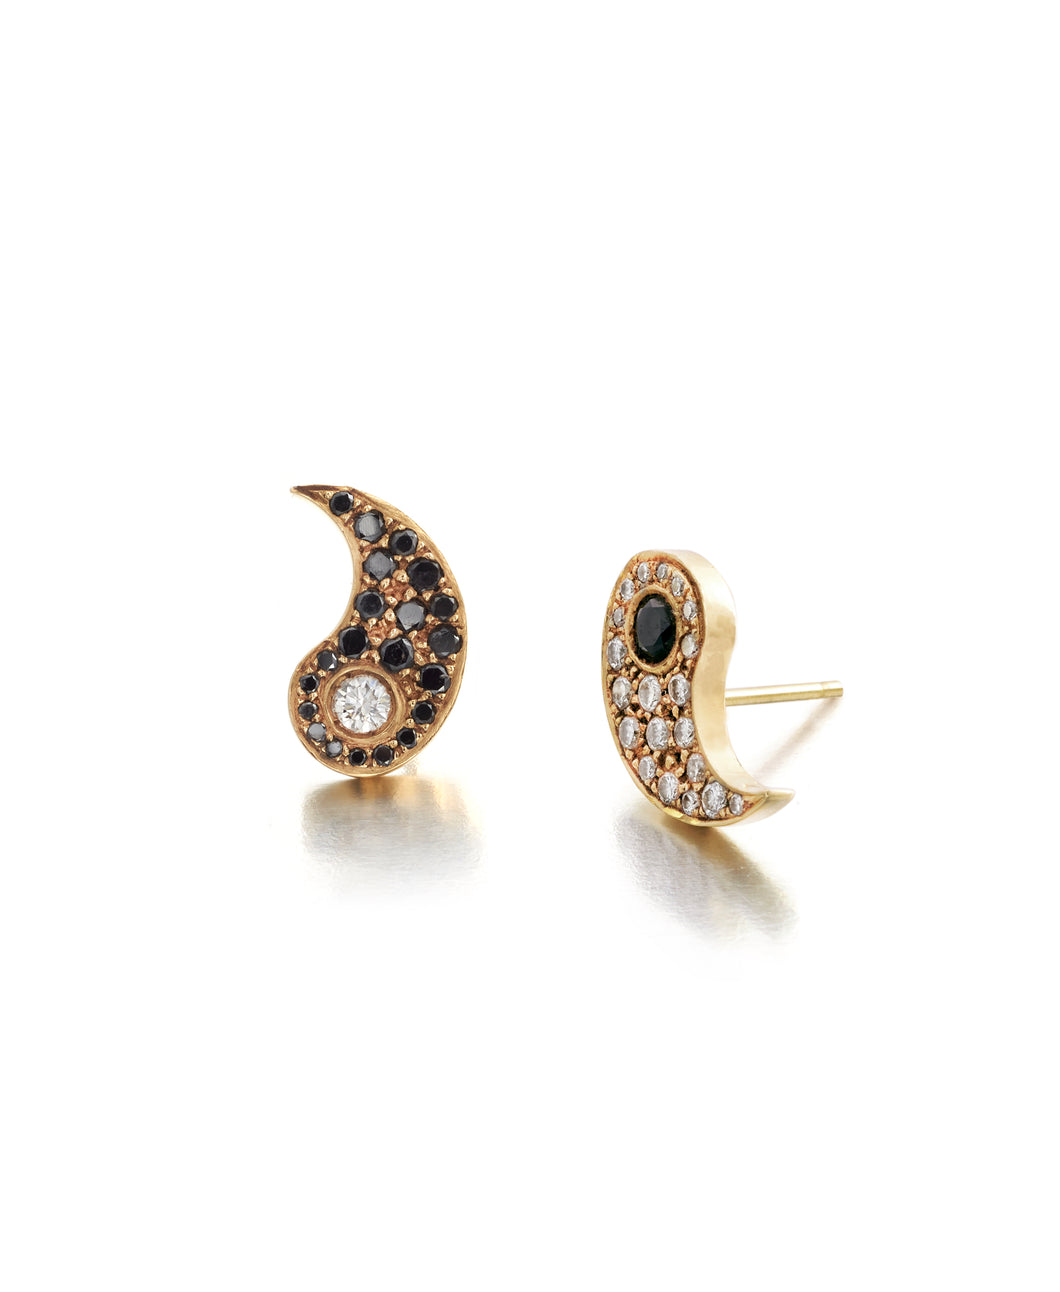 Yin Yang Diamond Earrings